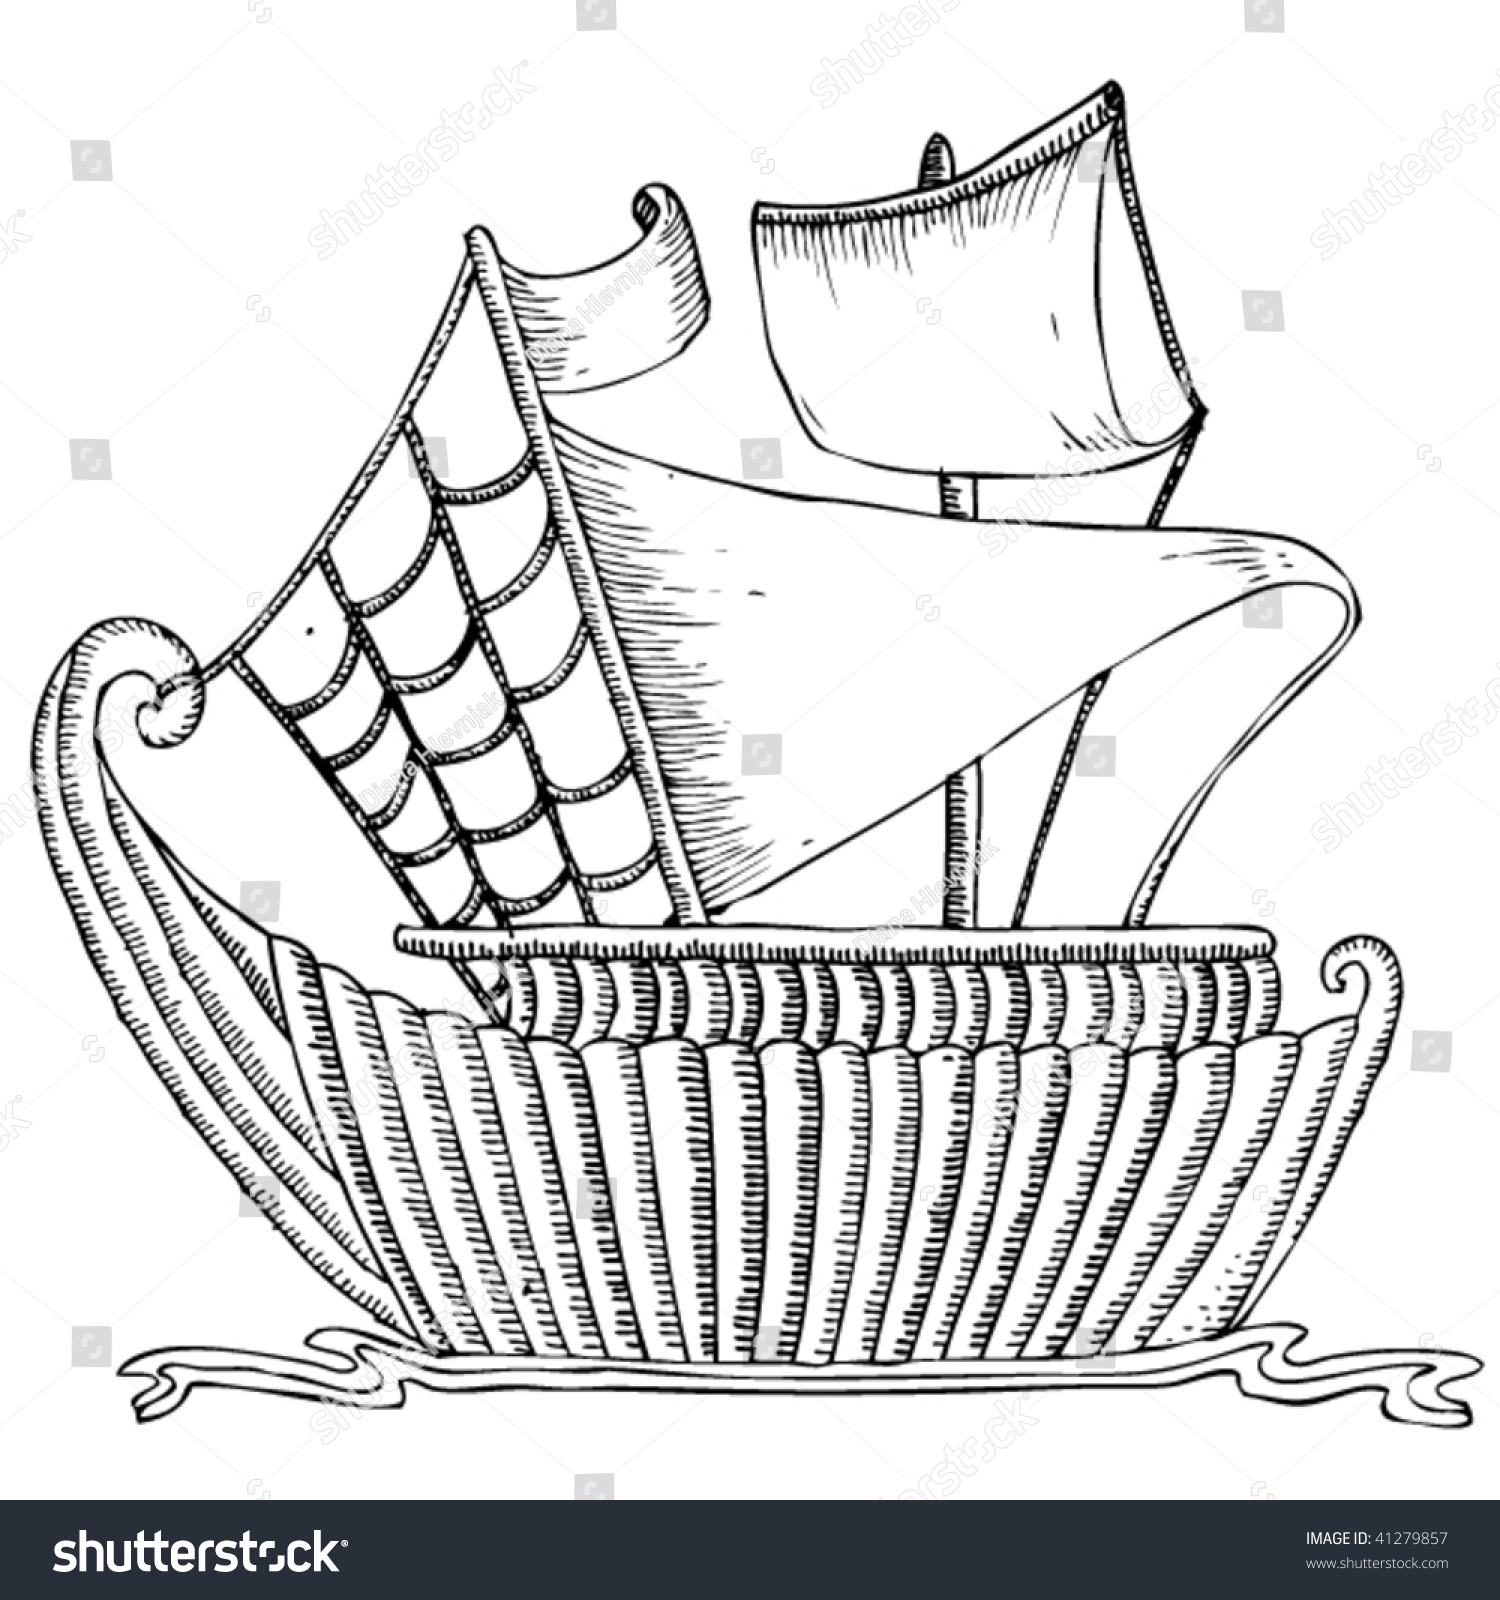 Drawing Of A Wooden Ship